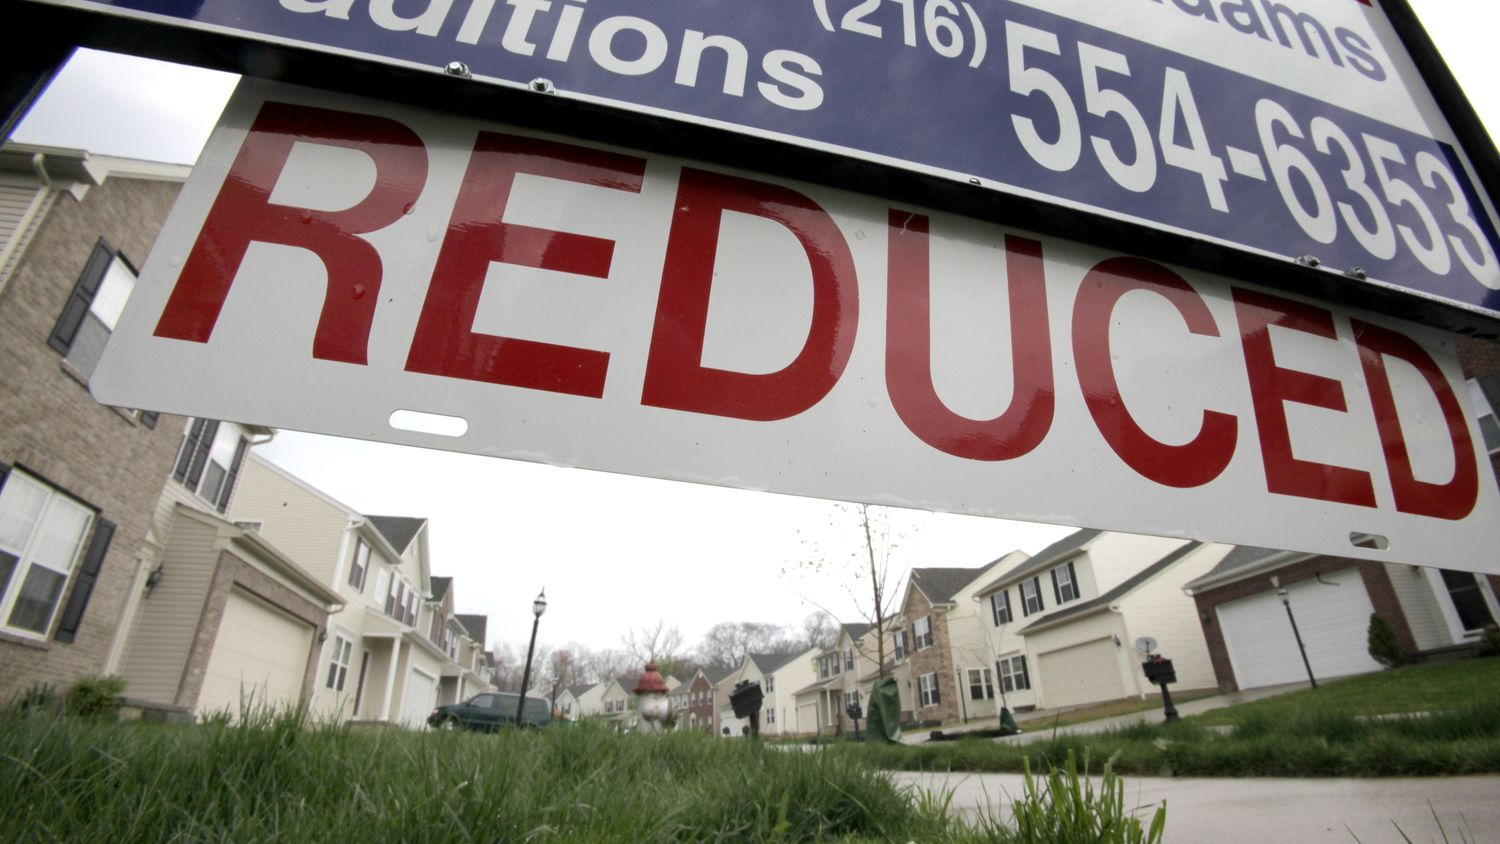 Nationwide home prices are expected to fall by almost 7%, according to CoreLogic.